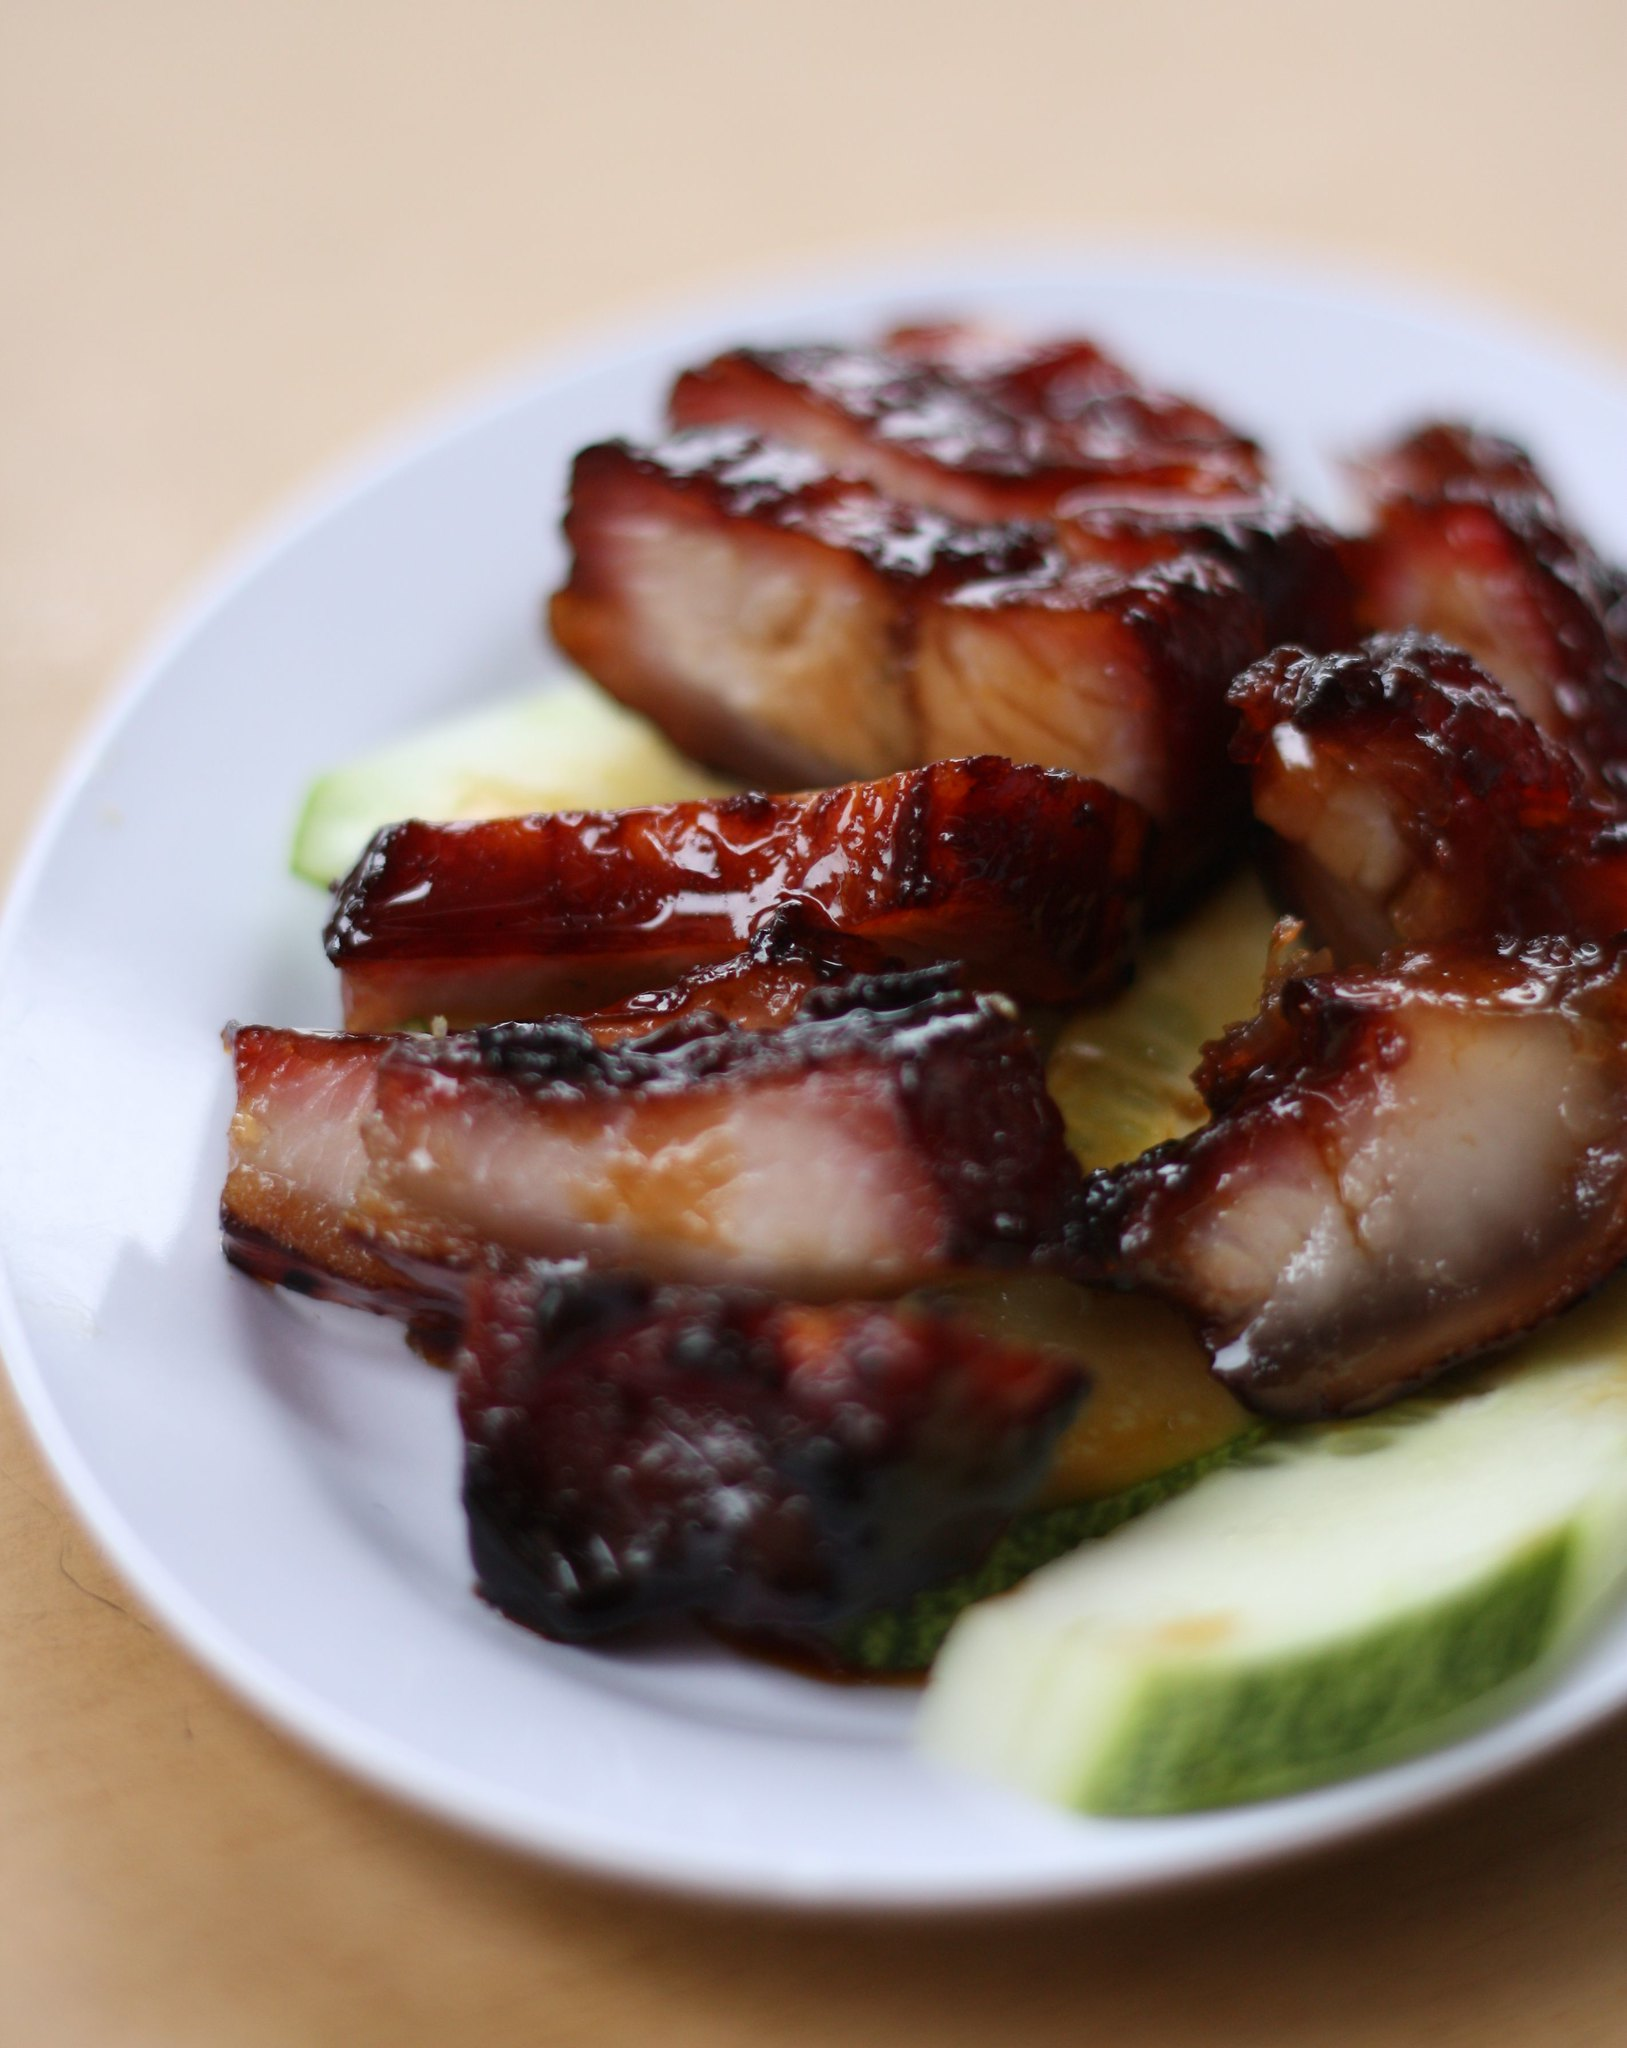 Char siu, traditional Hong Kong cuisine, pork on a white plate.